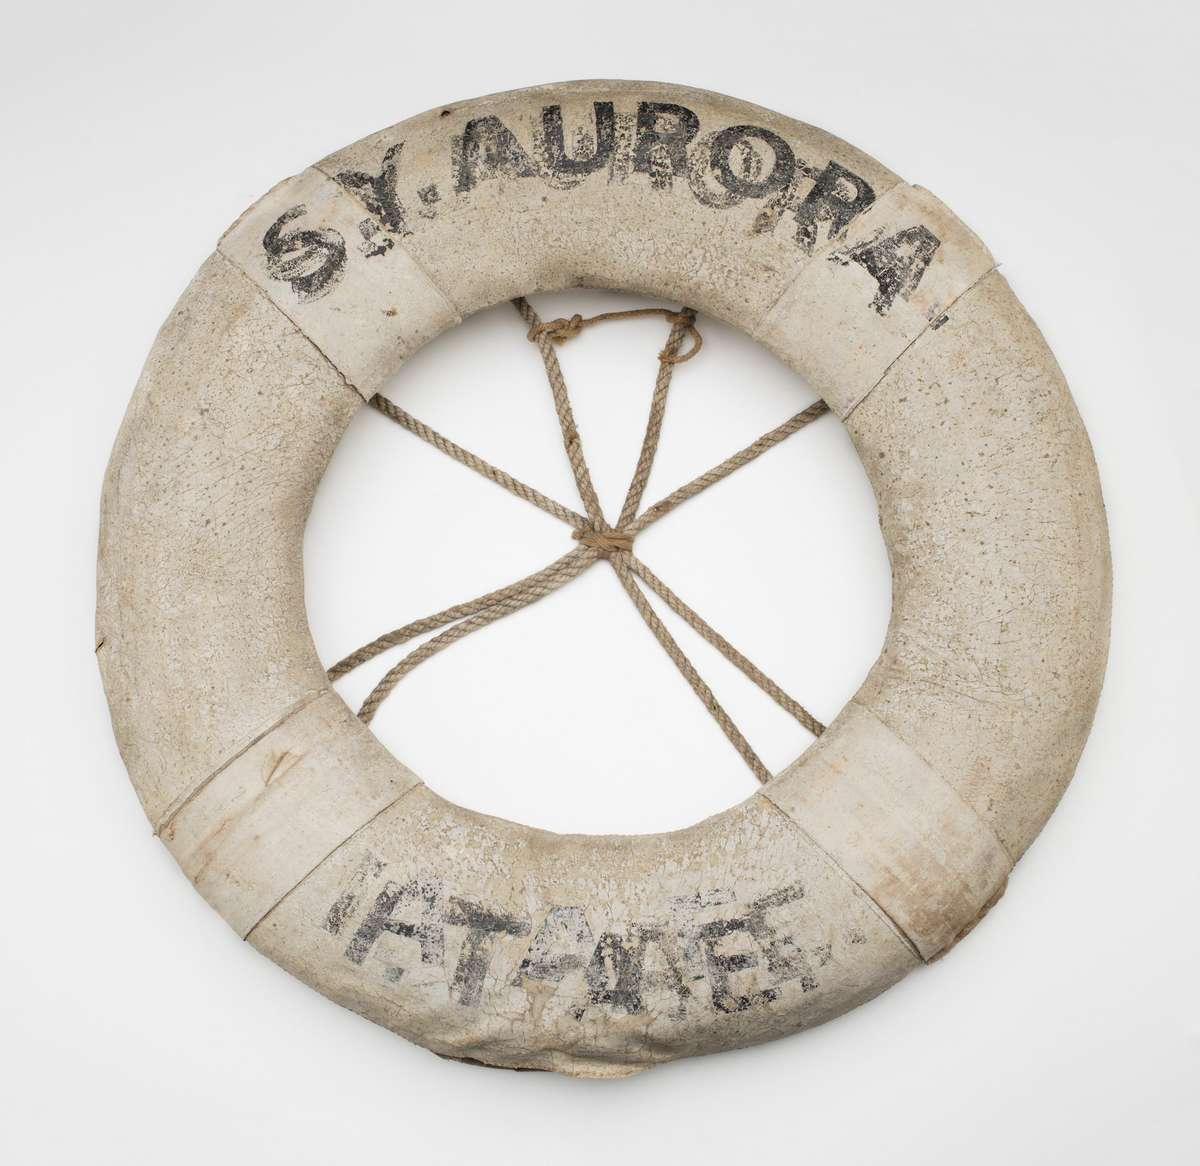 This lifebuoy is all that was recovered from the vessel's last days in Australian waters. Captain Reeves, his 20 men and his ship were lost.